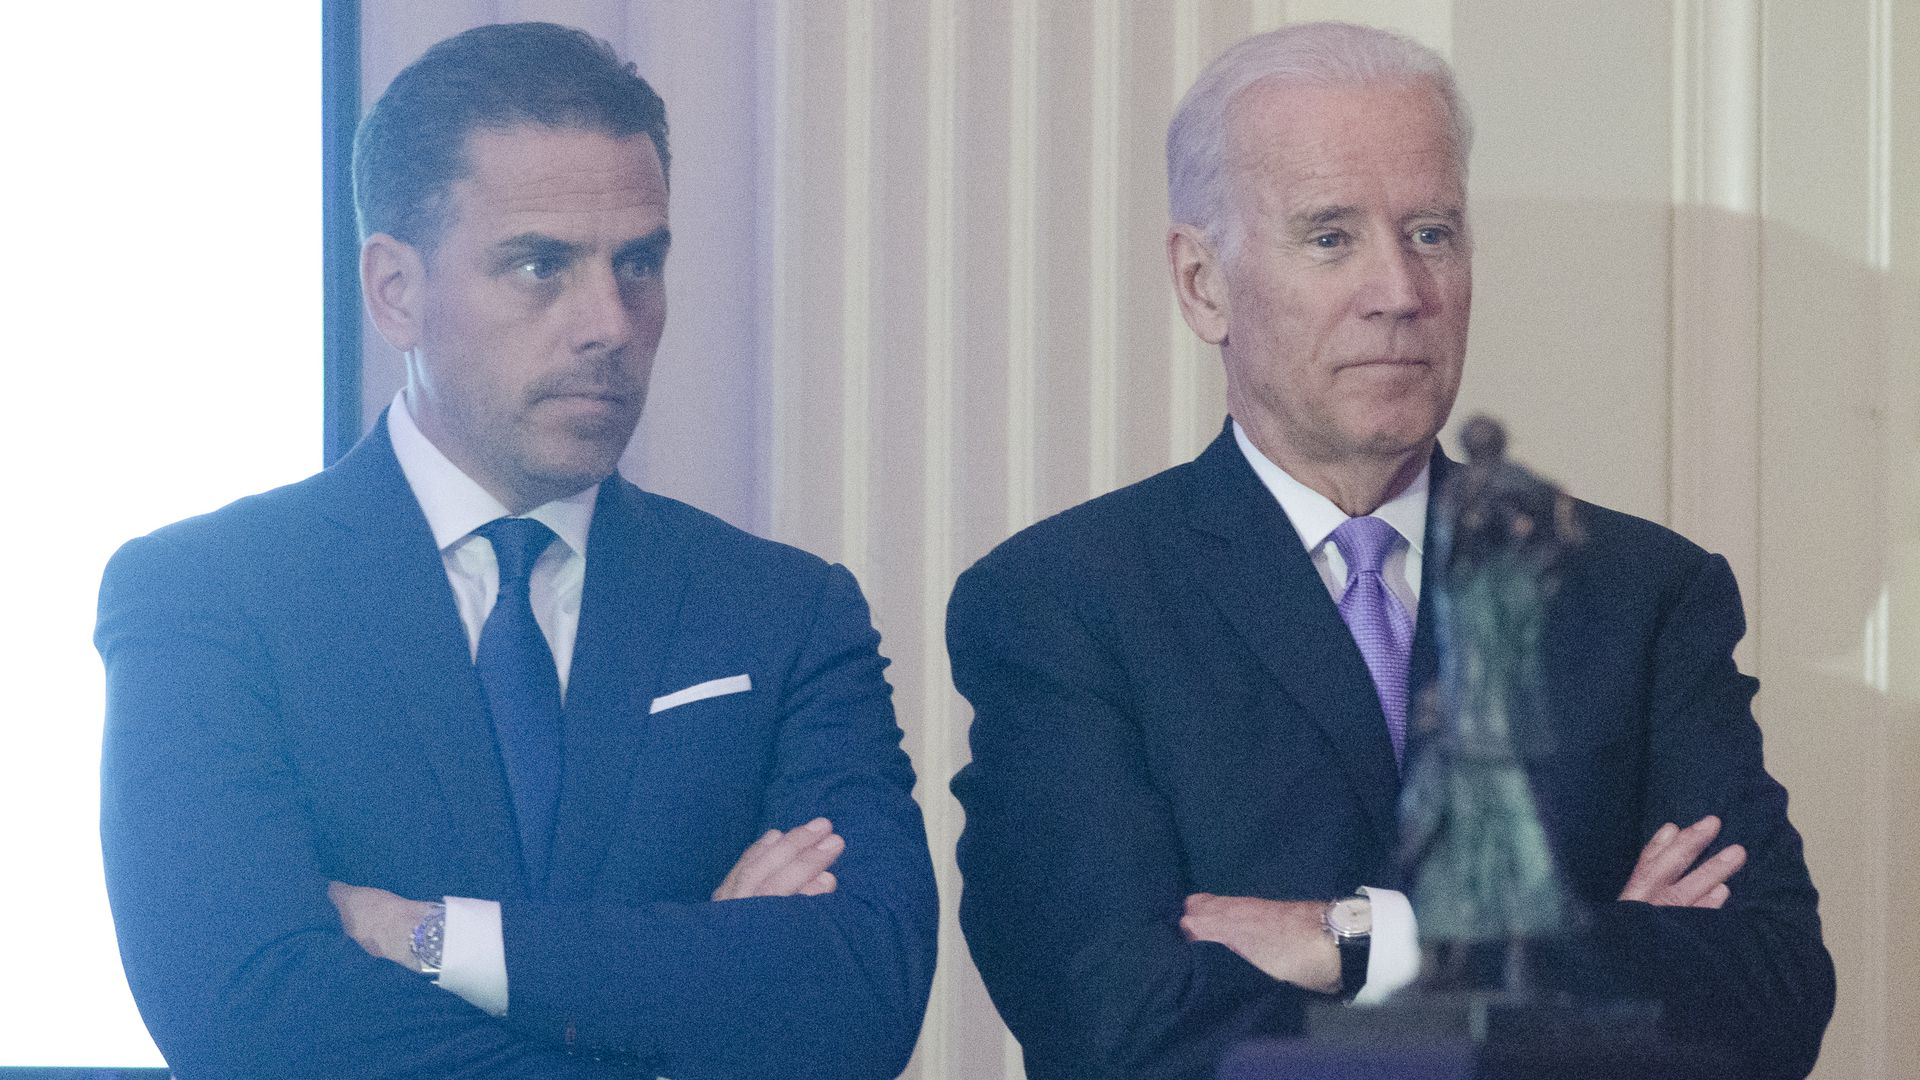 Fact check: What Joe and Hunter Biden actually did in Ukraine